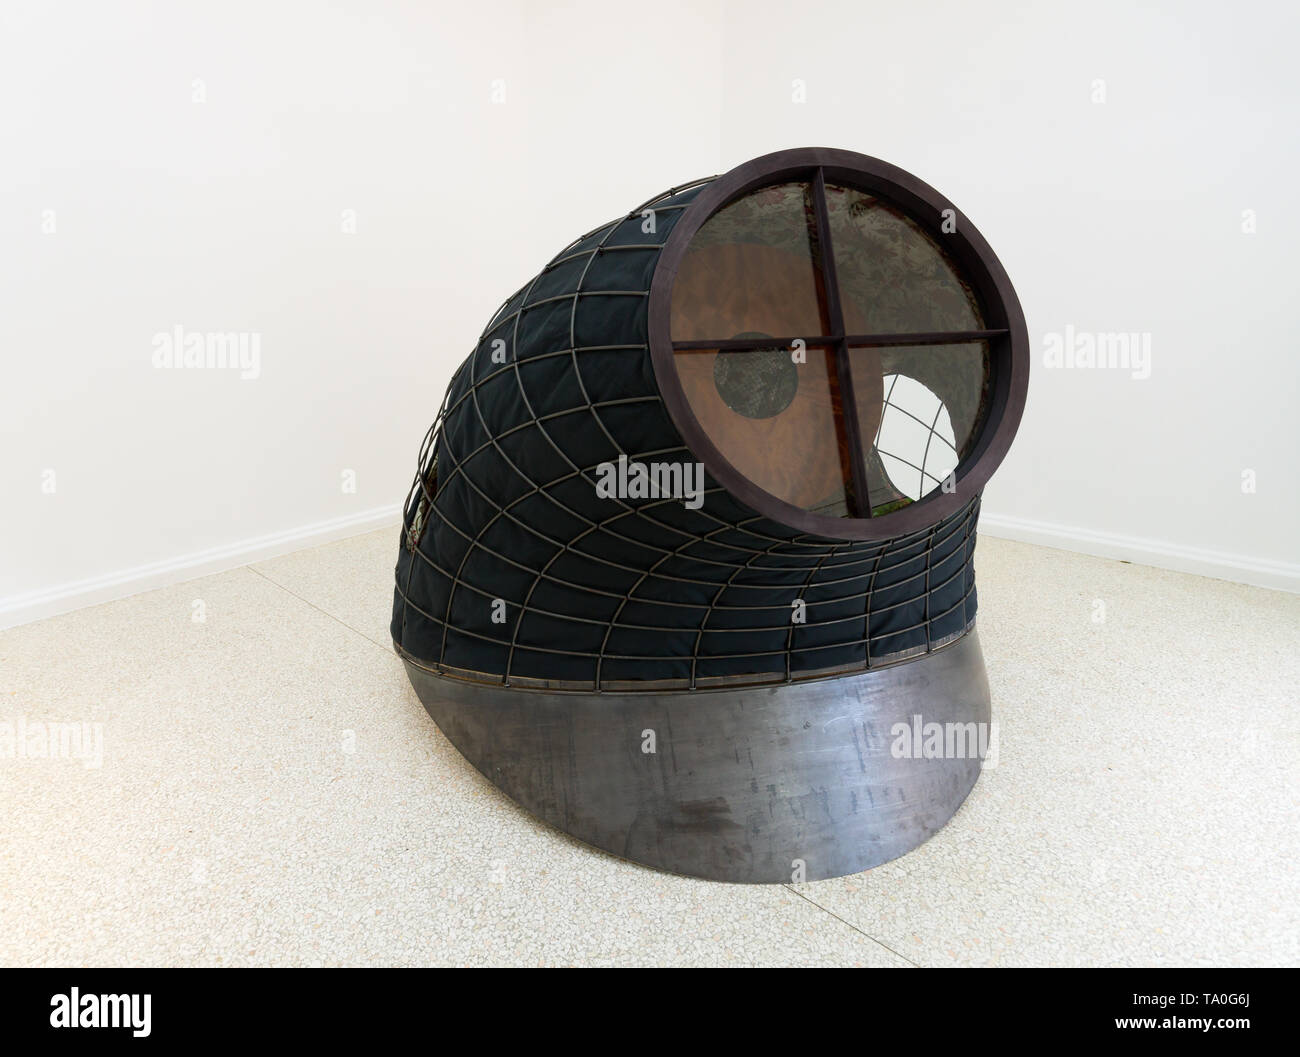 Martin Puryear, Tabernacle, 2019, sculpture, Liberty / Libertà exhibition, United States Pavilion, 58th Venice Art Biennale 2019 - Stock Image